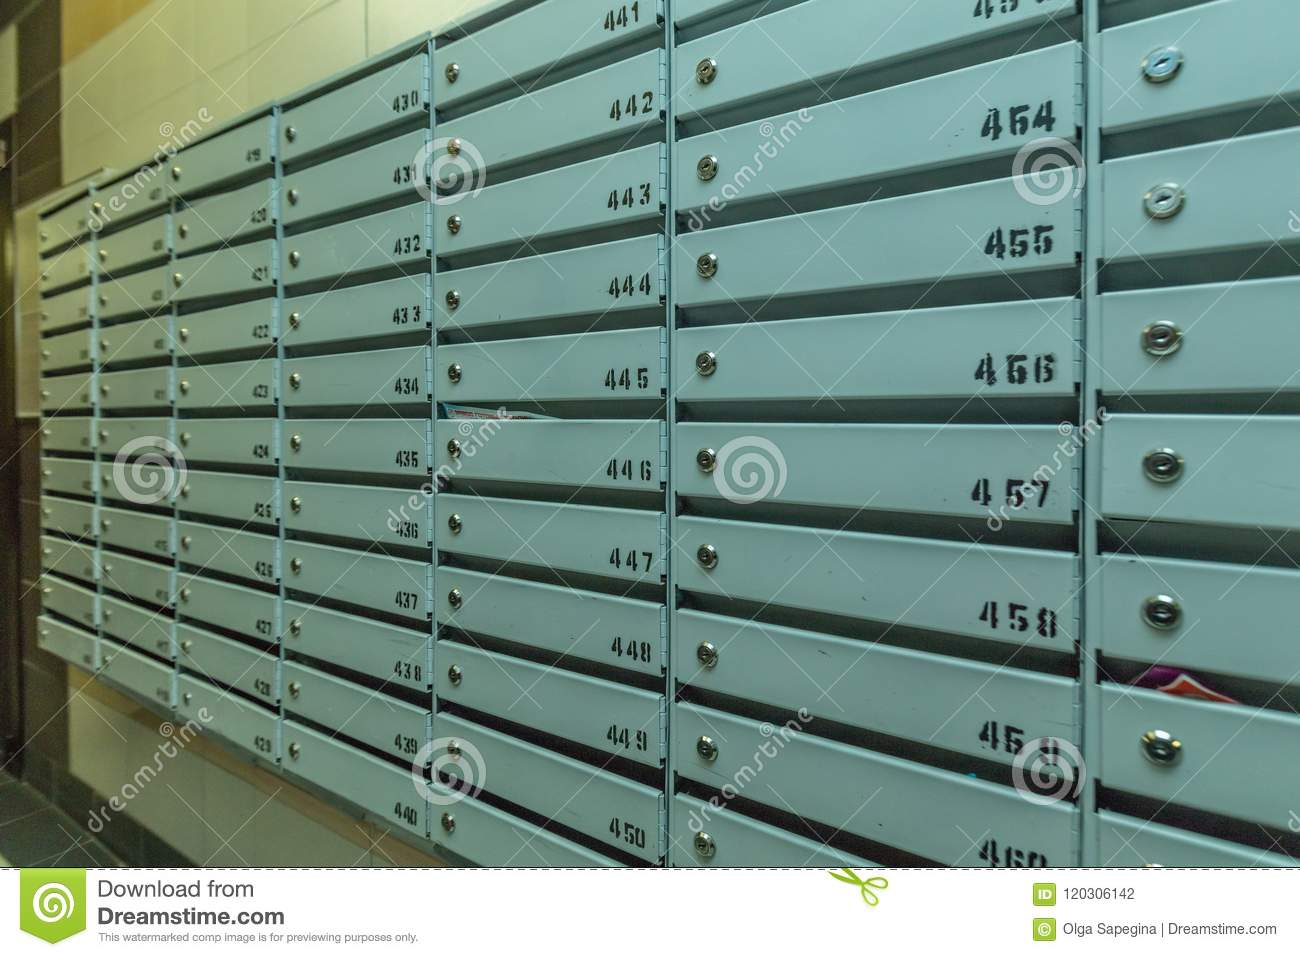 Rows of metal mailboxes